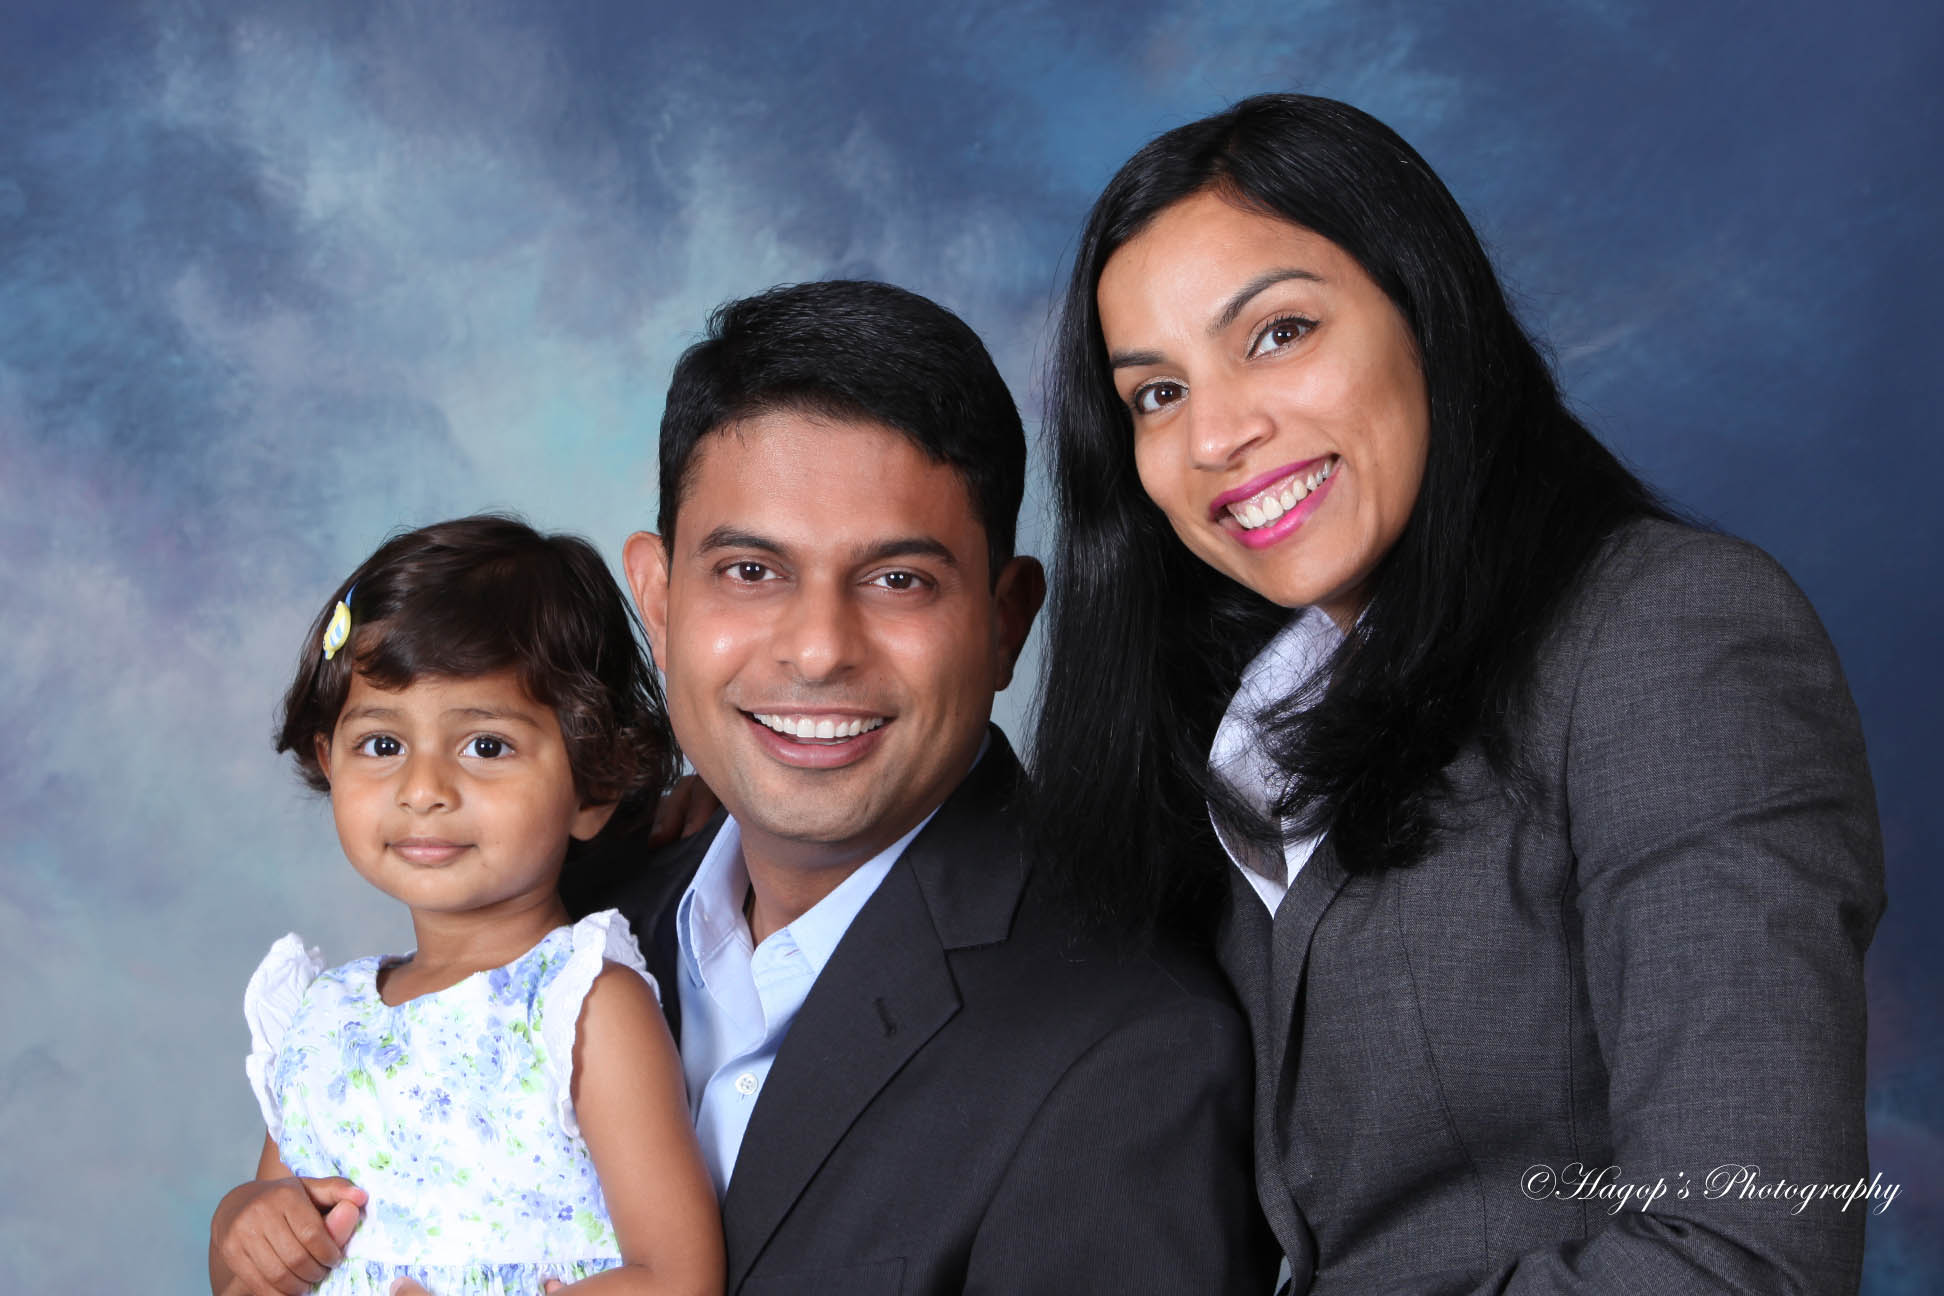 family portrait in front of a blue background